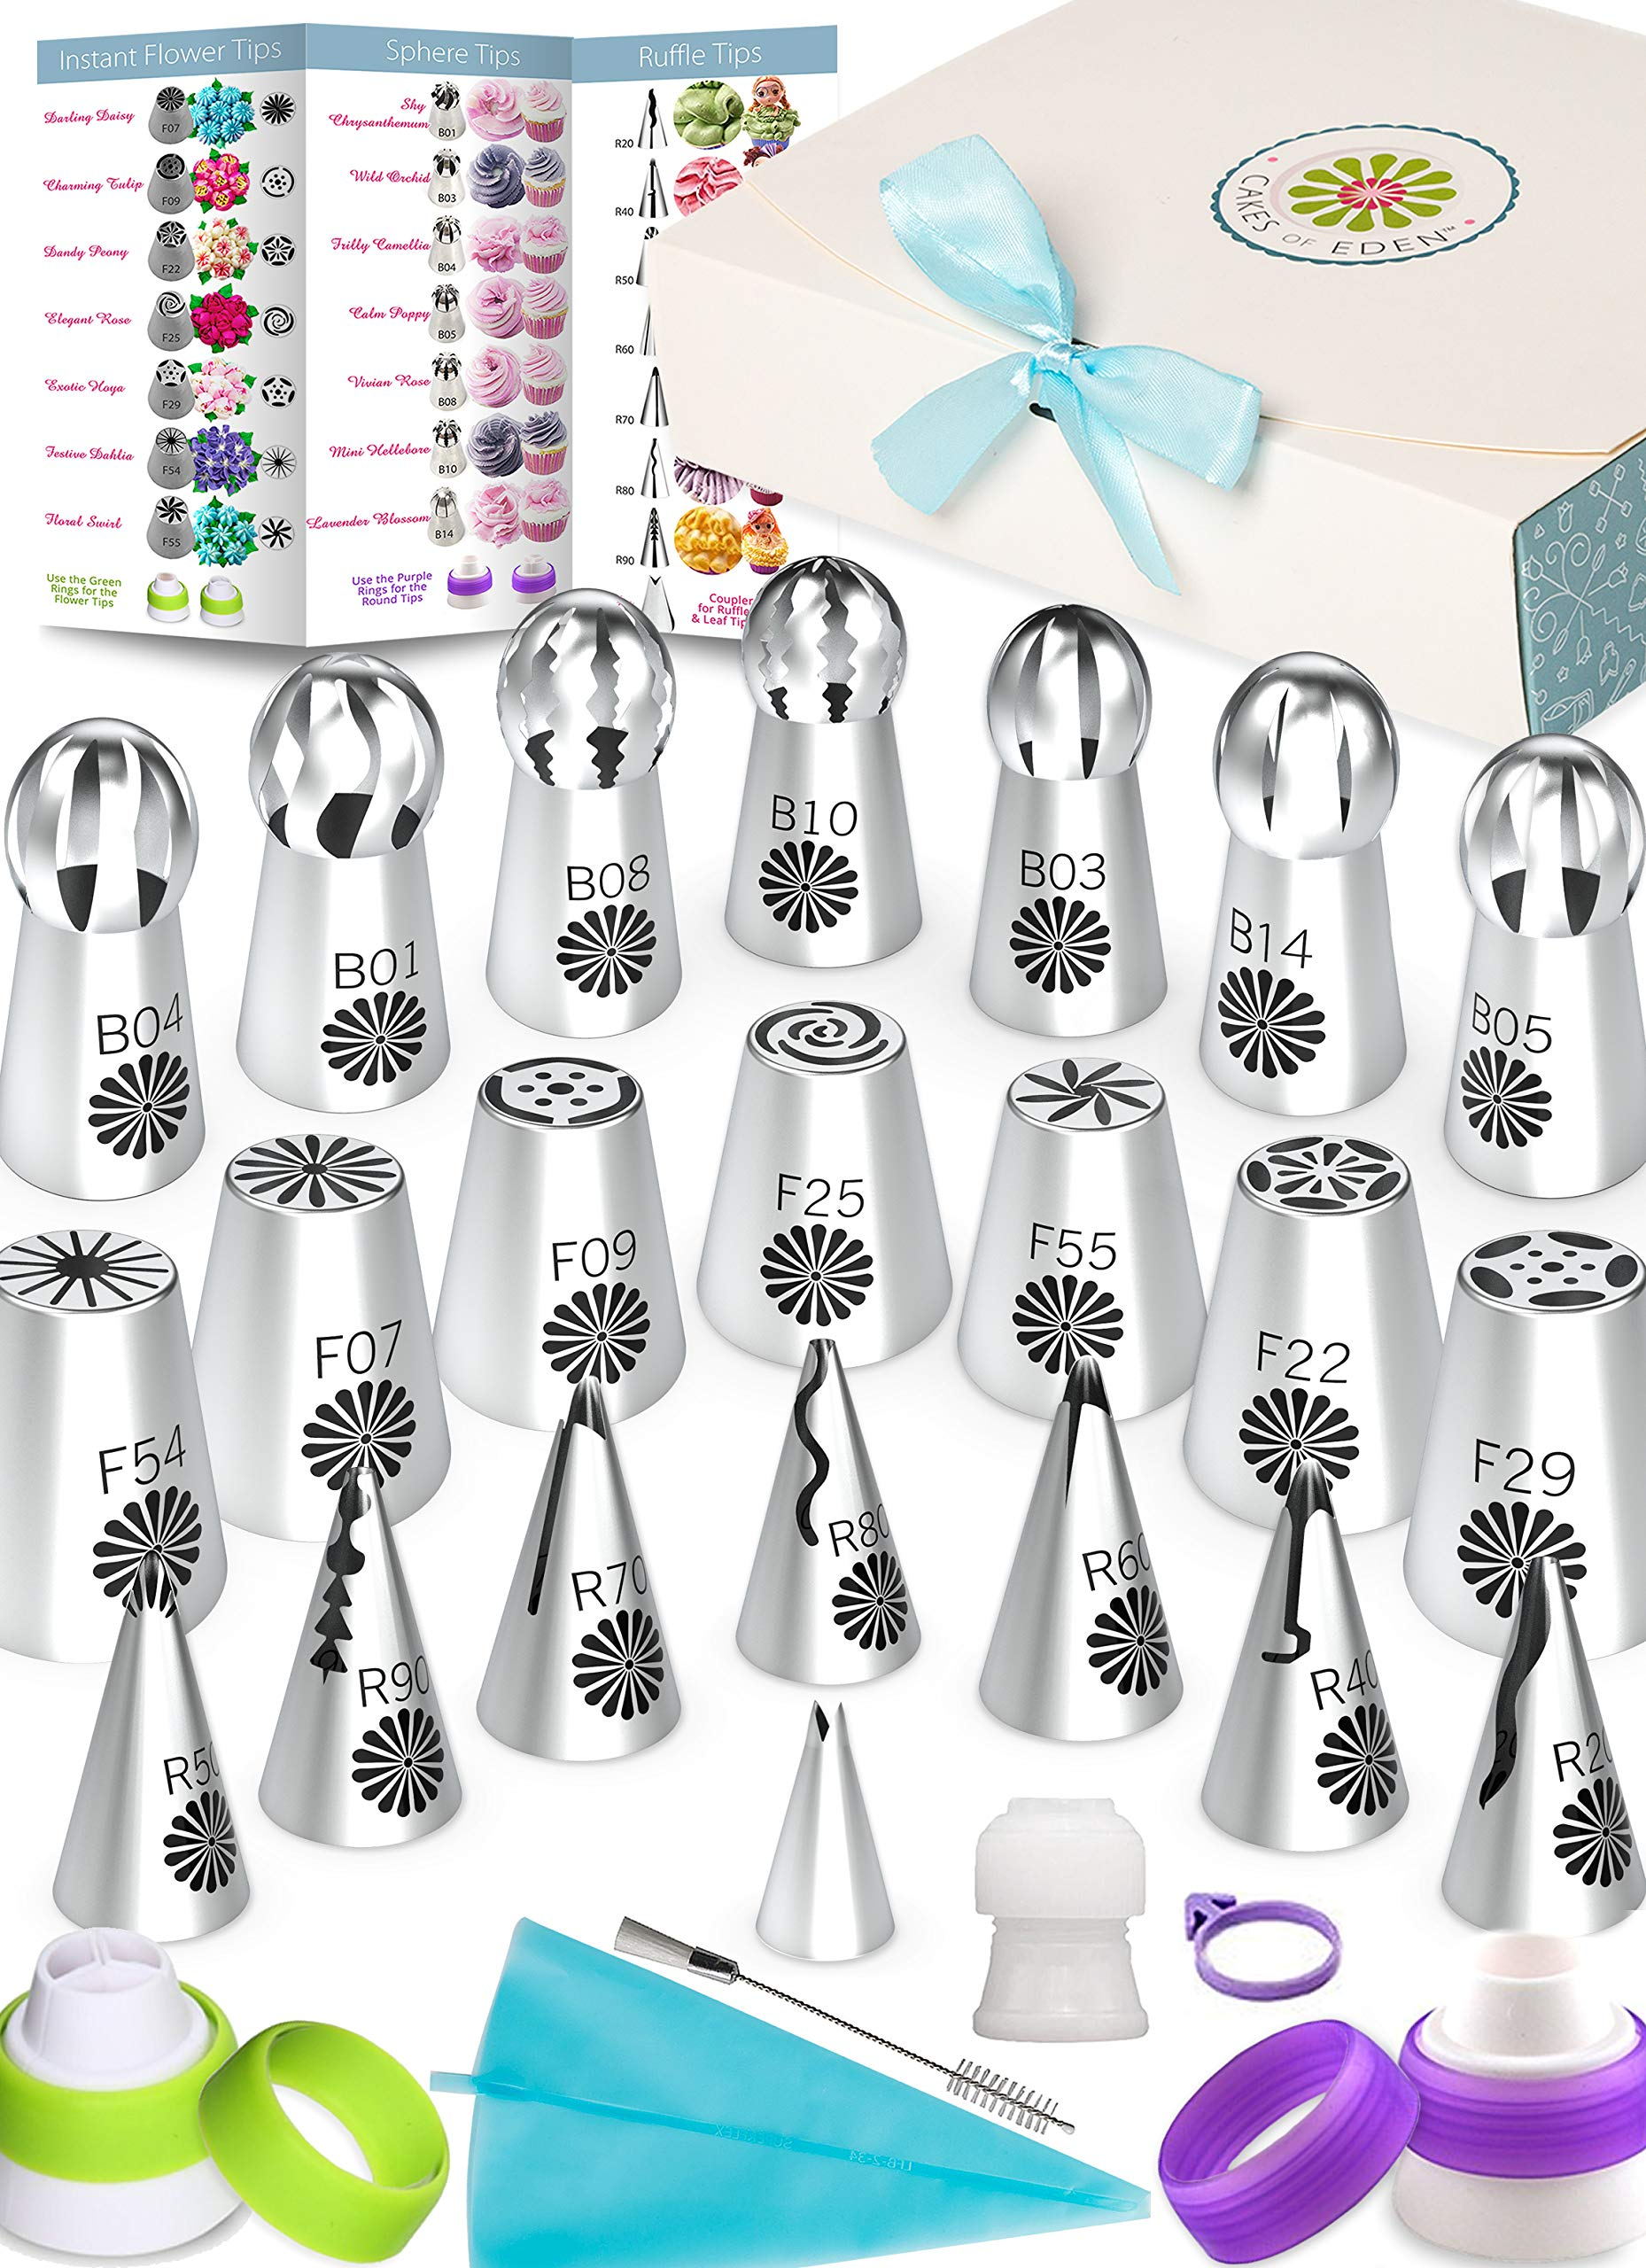 VARIETY RUSSIAN PIPING TIPS SET - 69pc Instant Flower Shaped Frosting Cupcake & Cake Decorating Icing Nozzles. Bonus Supplies, Baking Accessories, Pastry Bags, Recipes & Video Tutorials For Beginners by Cakes of Eden